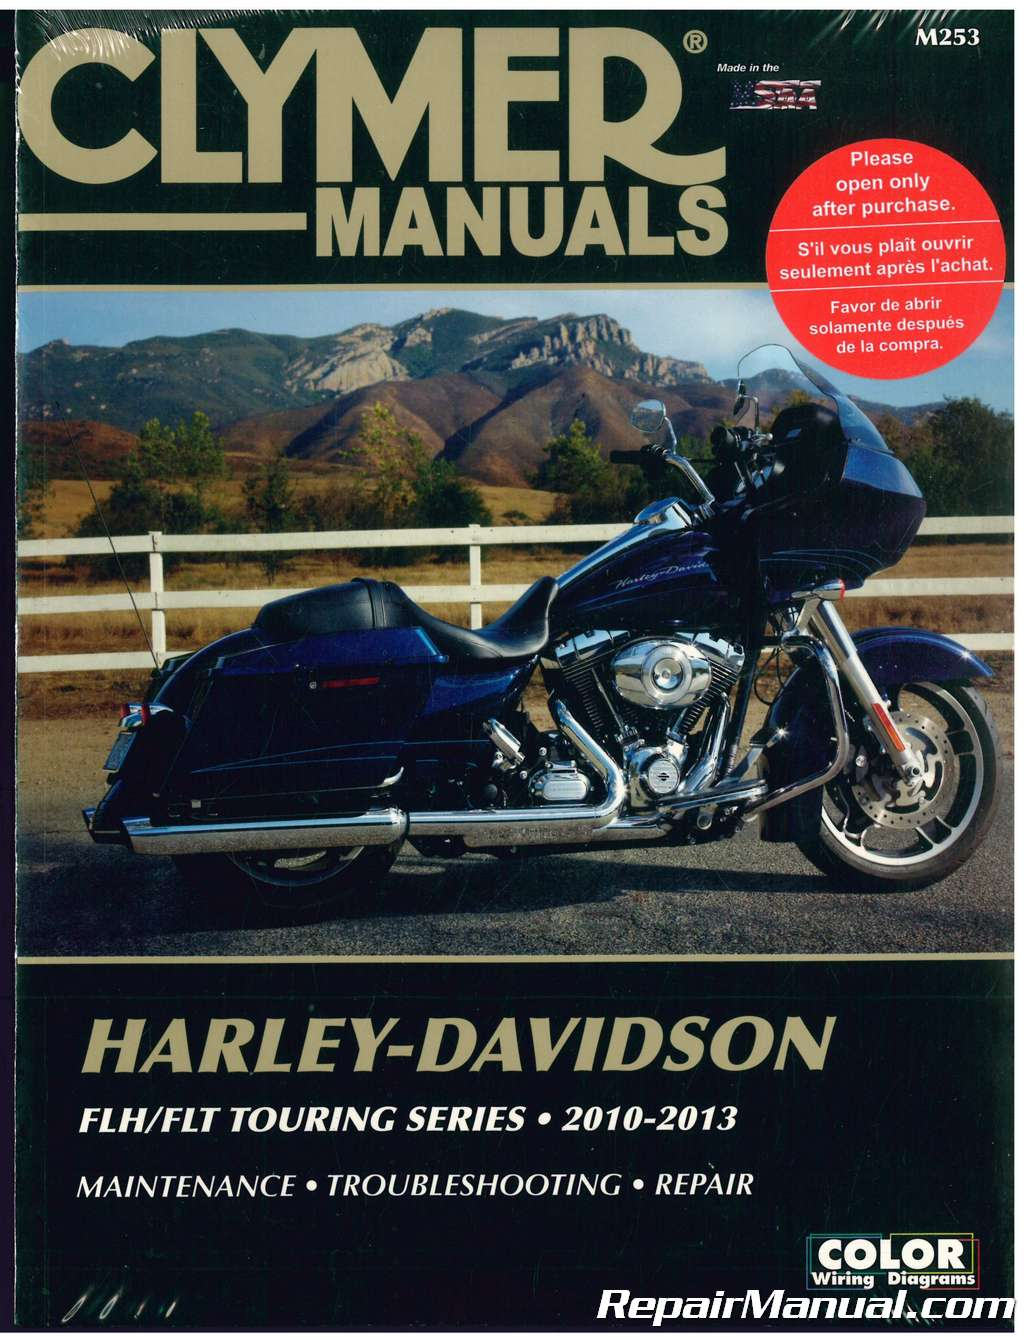 Clymer Harley Davidson Flh Flt Touring Series 2010 2013 Motorcycle Wiring Diagram Repair Manual